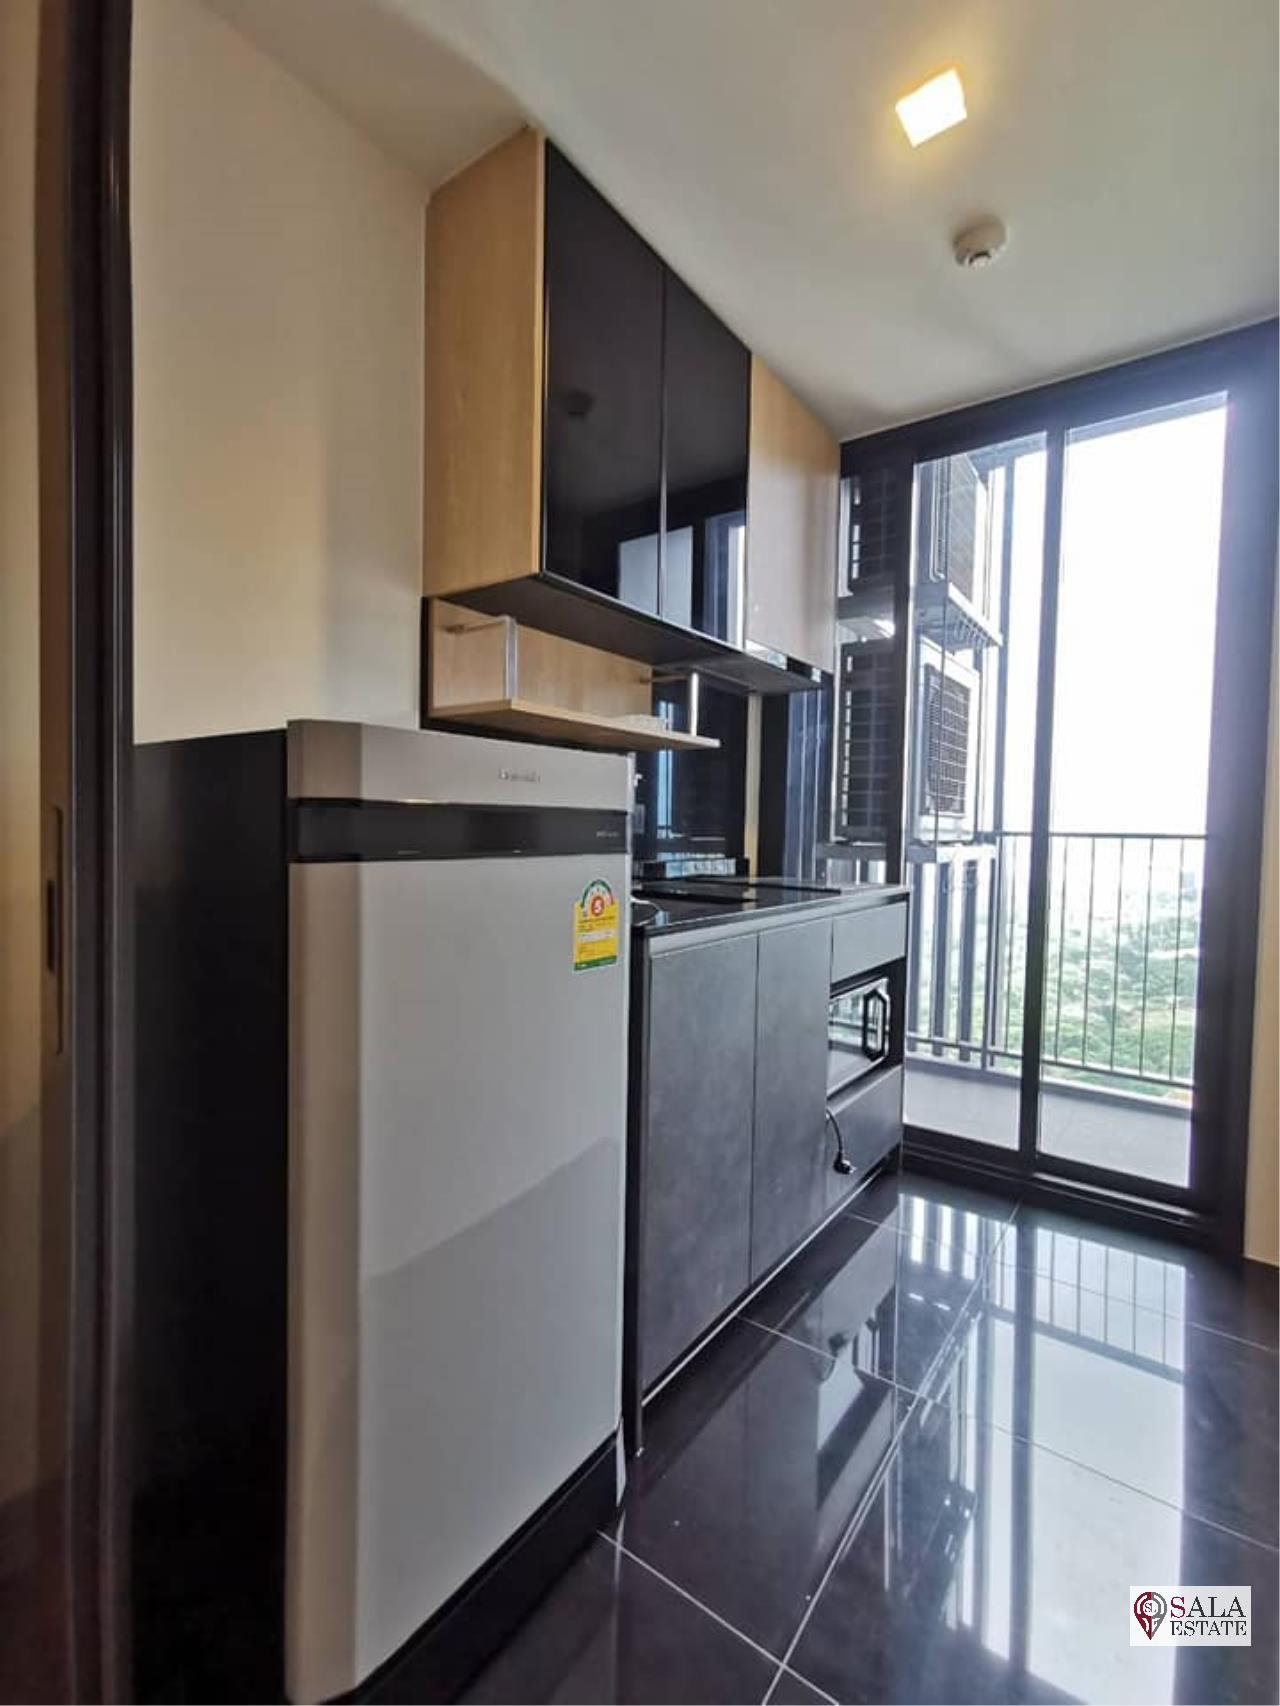 SALA ESTATE Agency's THE LINE JATUJAK MOCHIT – BTS MOCHIT, 1 BEDROOM 1 BATHROOM, FULLY FURNISHED, CITY VIEW 5